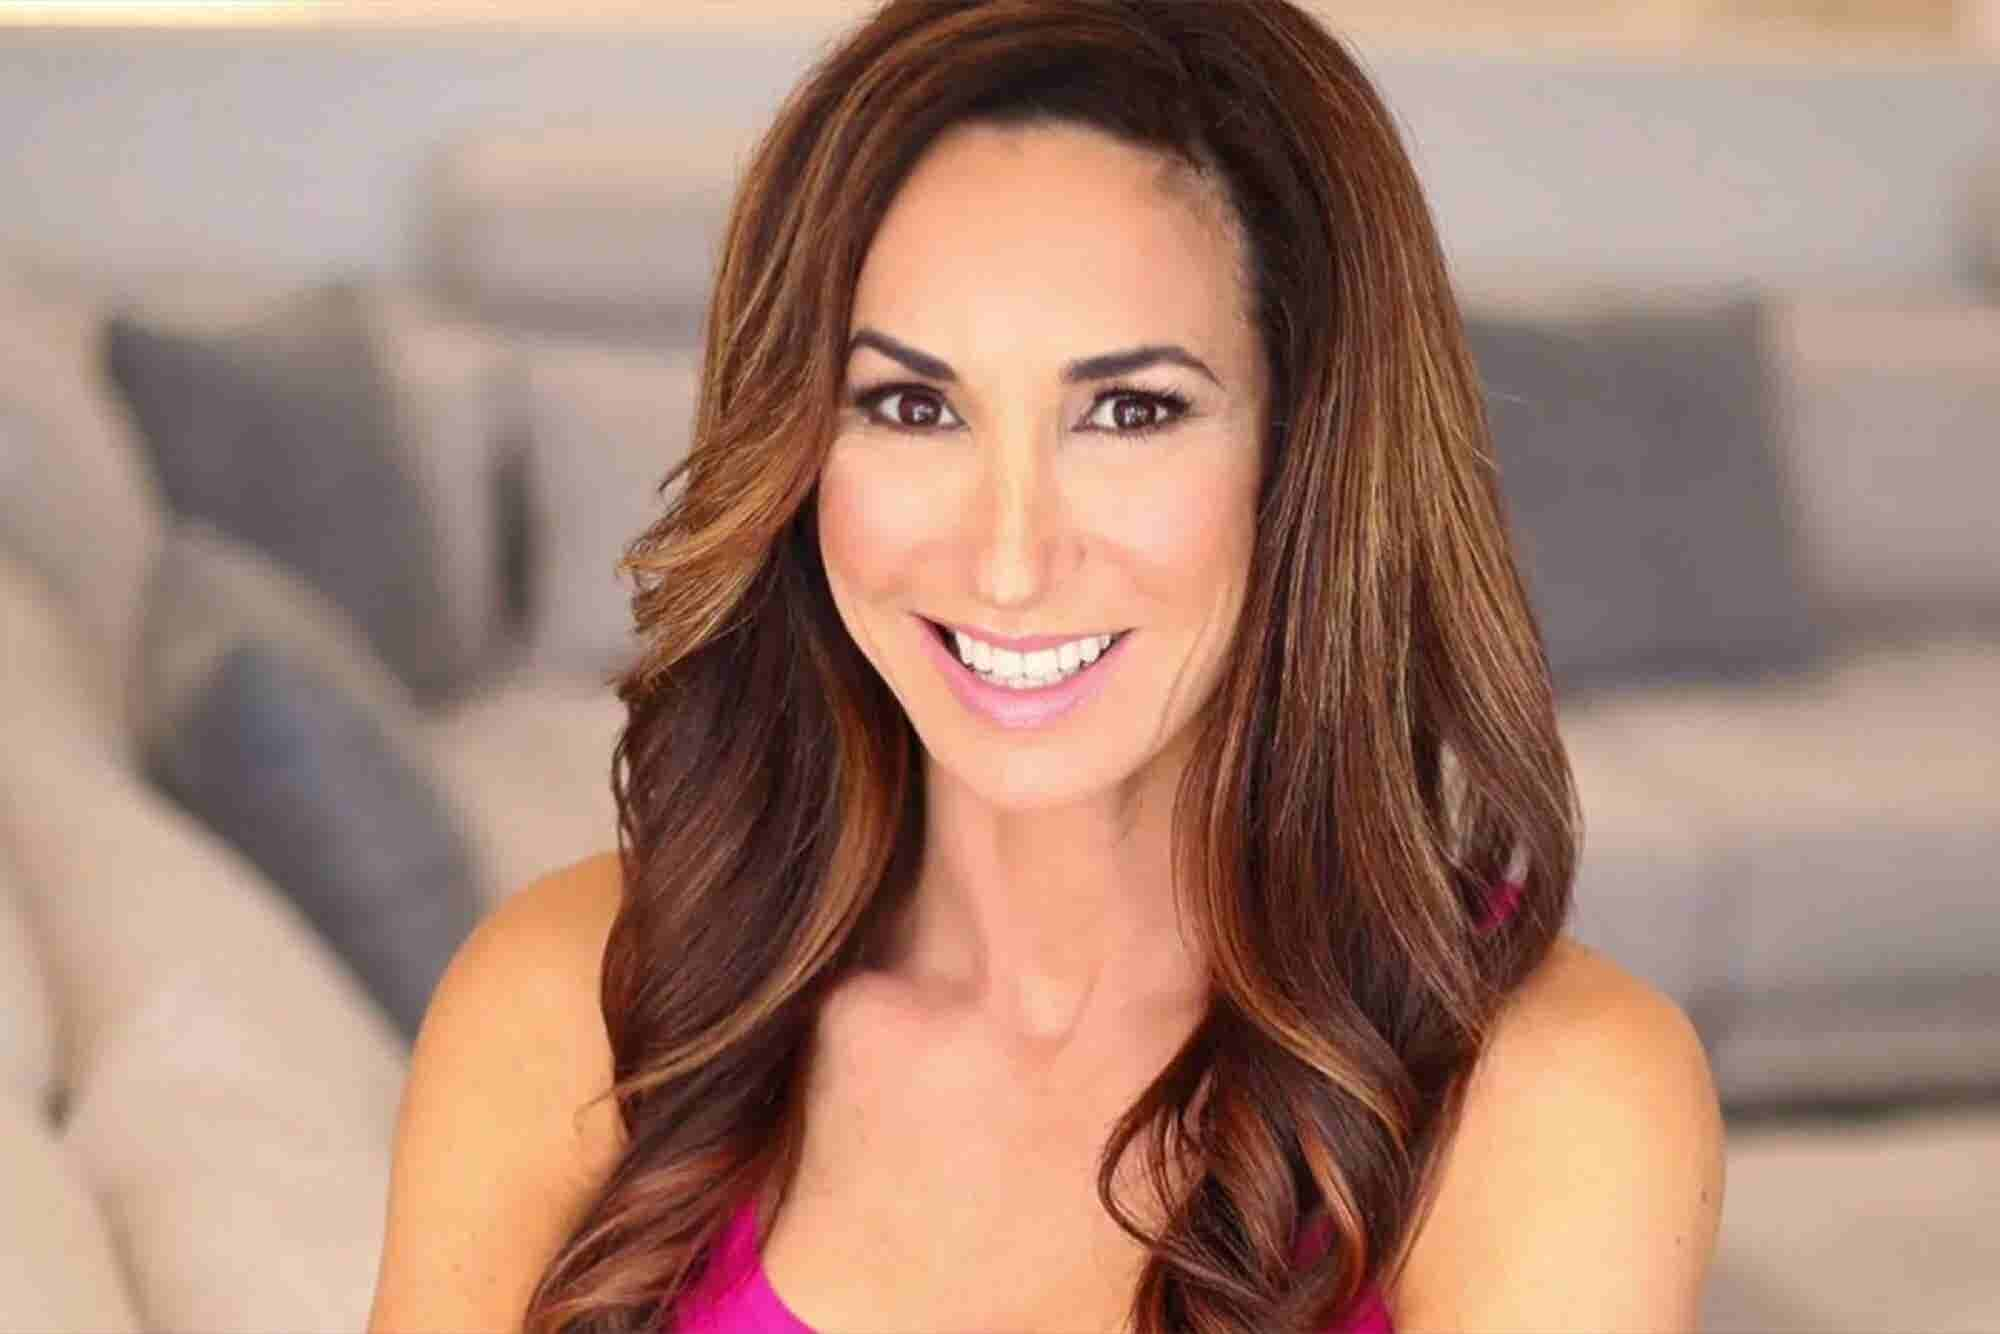 At Age 40, Natalie Jill Was Overweight and Broke. Then Fitness Made Her Millions.